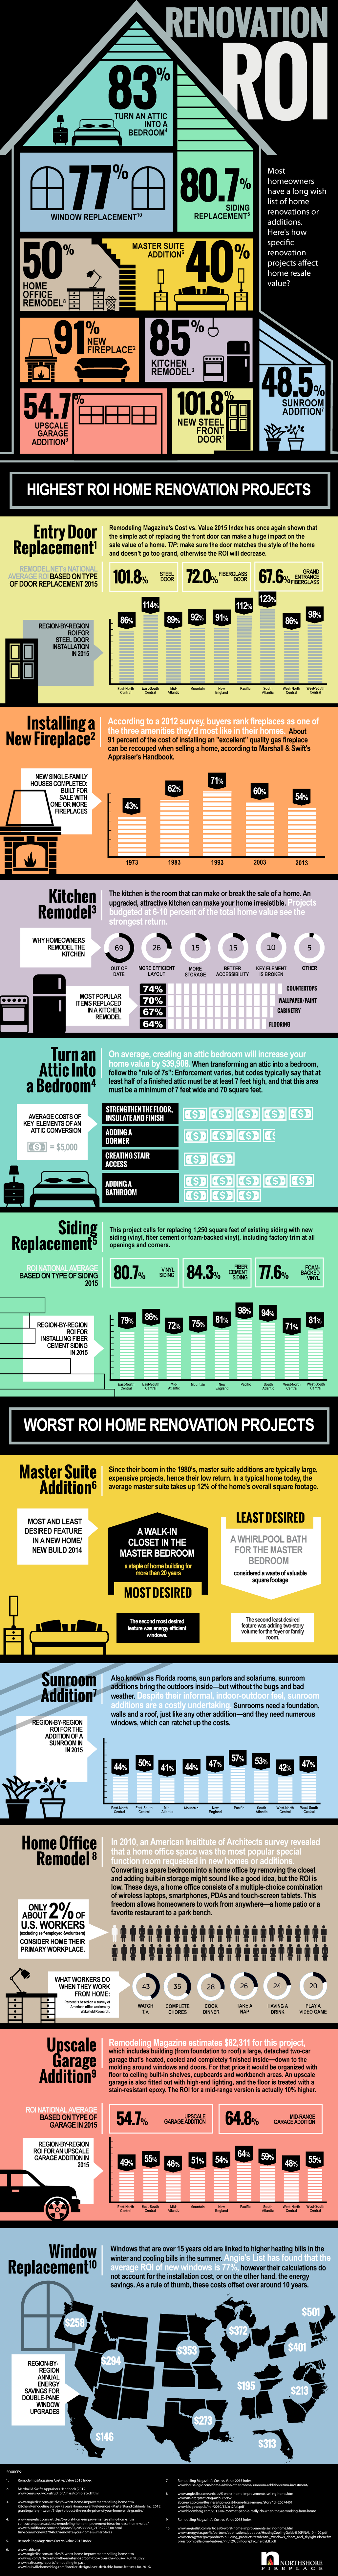 If you re interested in remodeling your home contact us to learn - If You Re Interested In Remodeling Your Home Contact Us To Learn 3